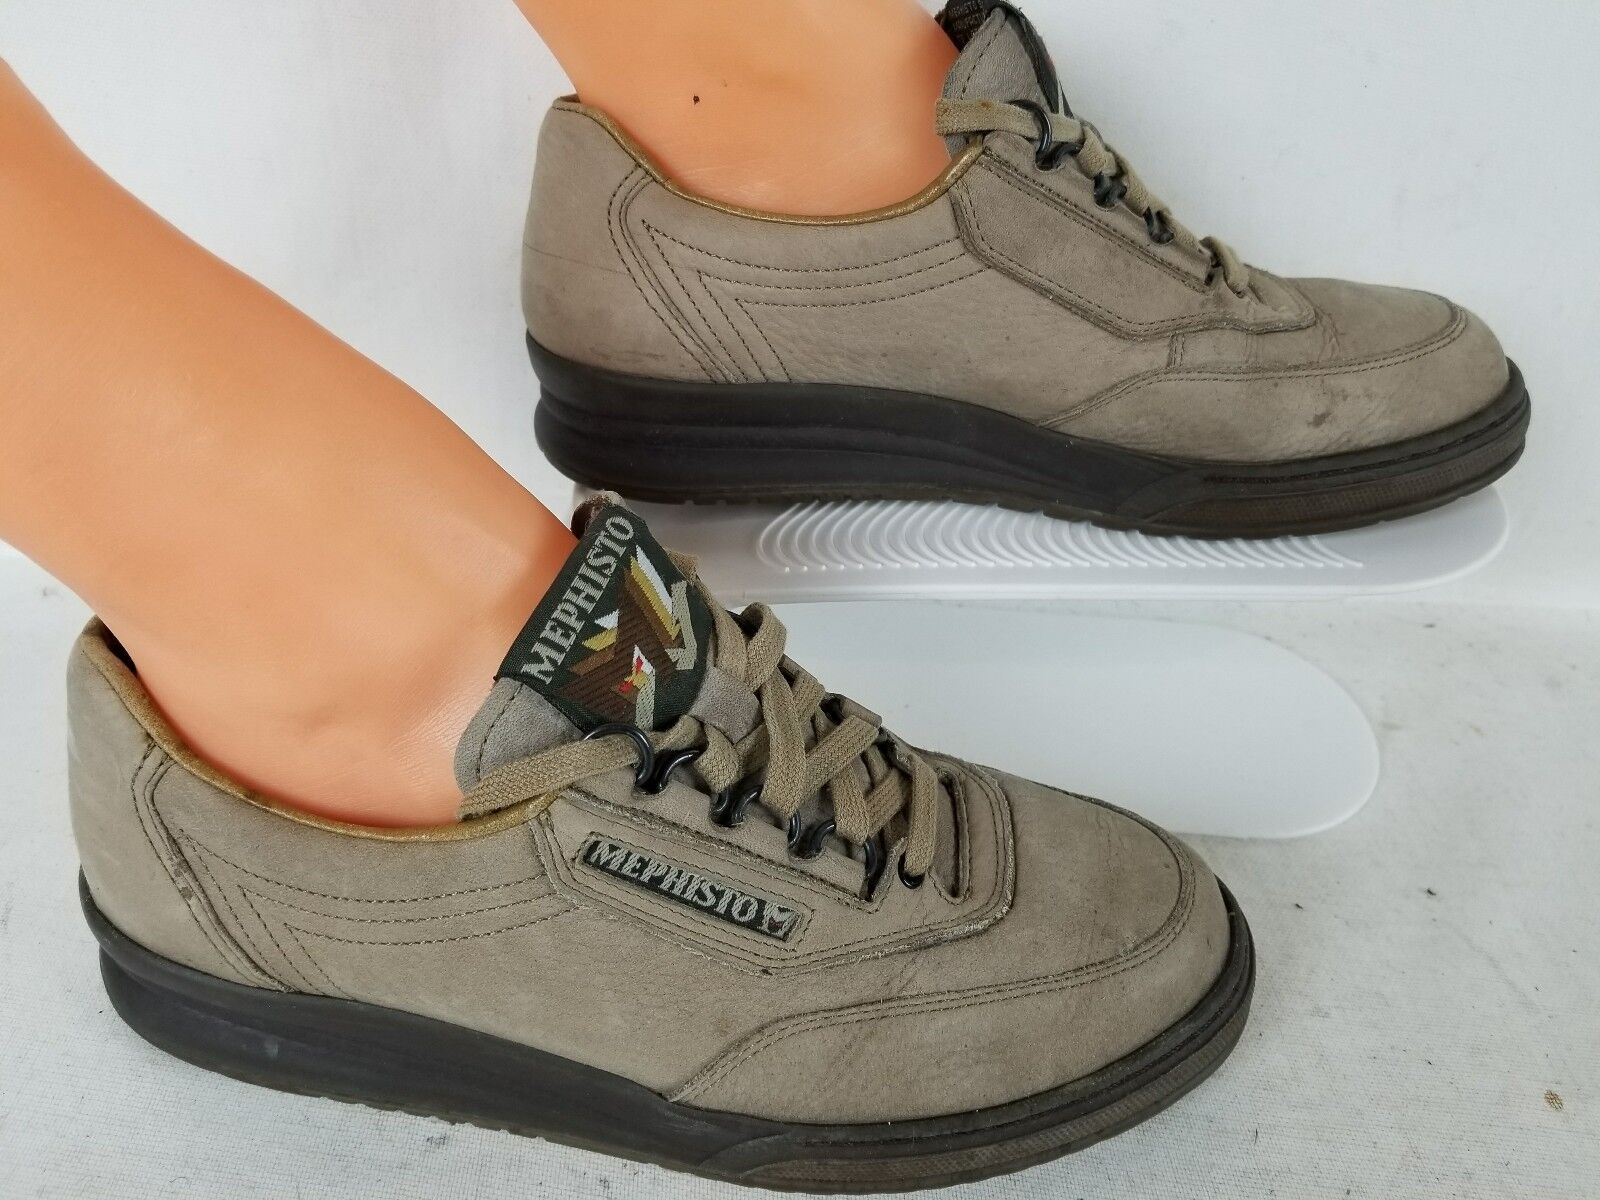 MEPHISTO WOMEN'S RUNOFF AIR JET SYS COMFORT ATHLETIC WALKING SHOES SZ US 8  375